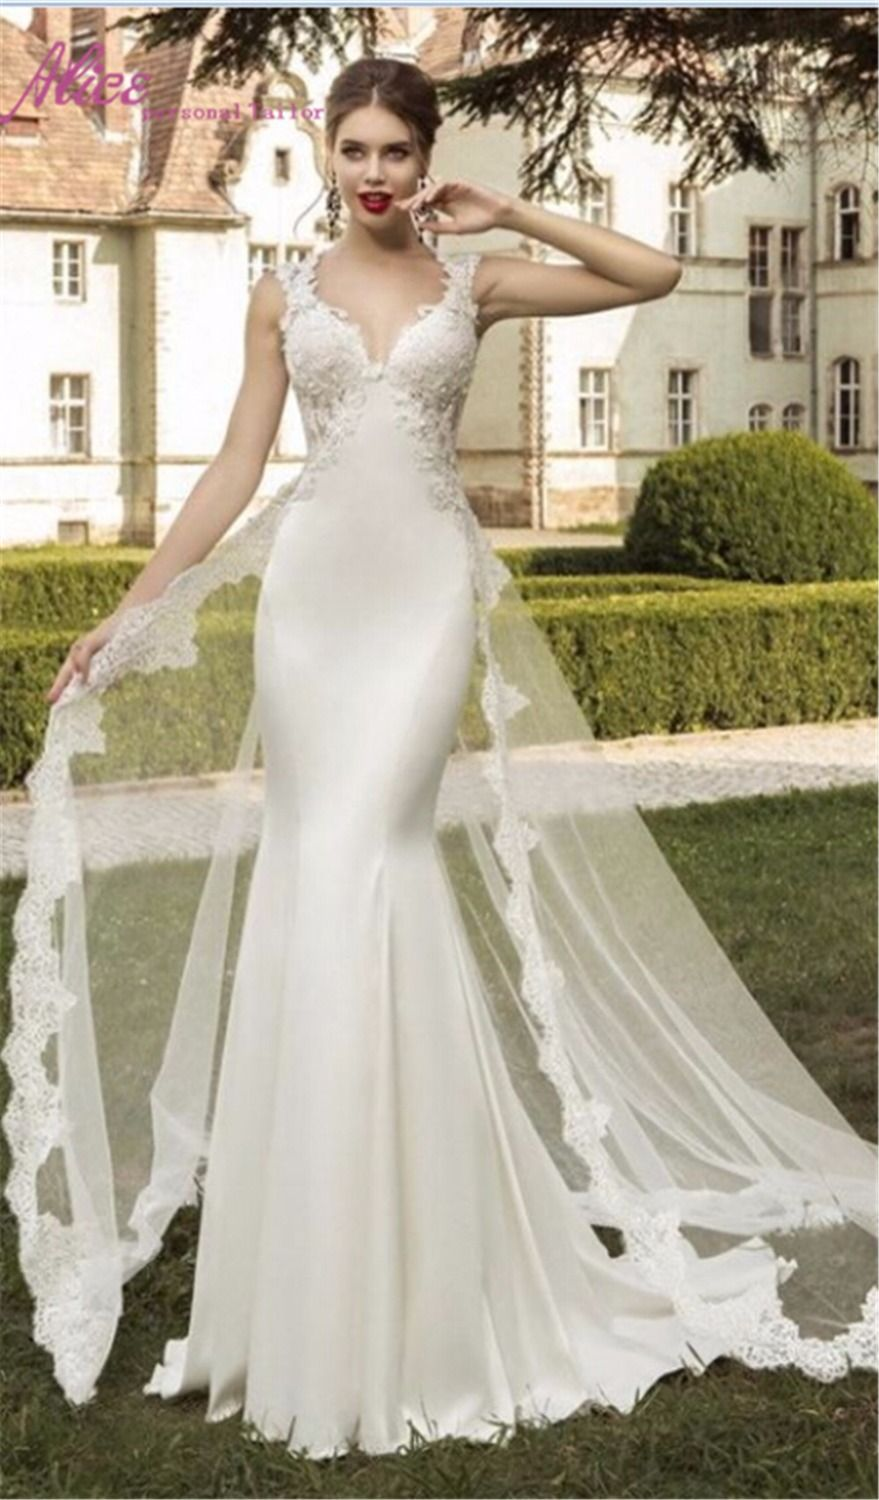 Gowns White Quality Dress Goods Directly From China Dresses Dropship Suppliers Welcome To Alice Bridal 1